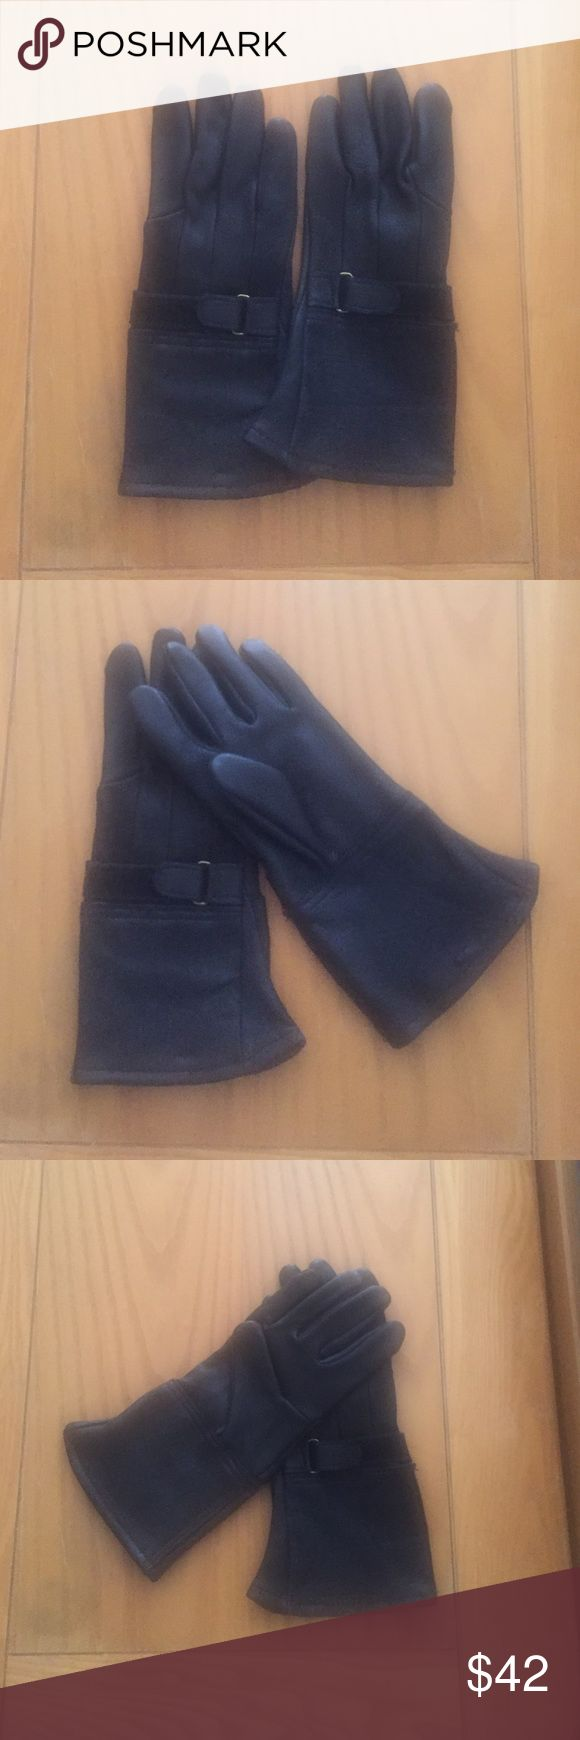 Womens leather motorcycle riding gloves - Motorcycle Riding Gloves